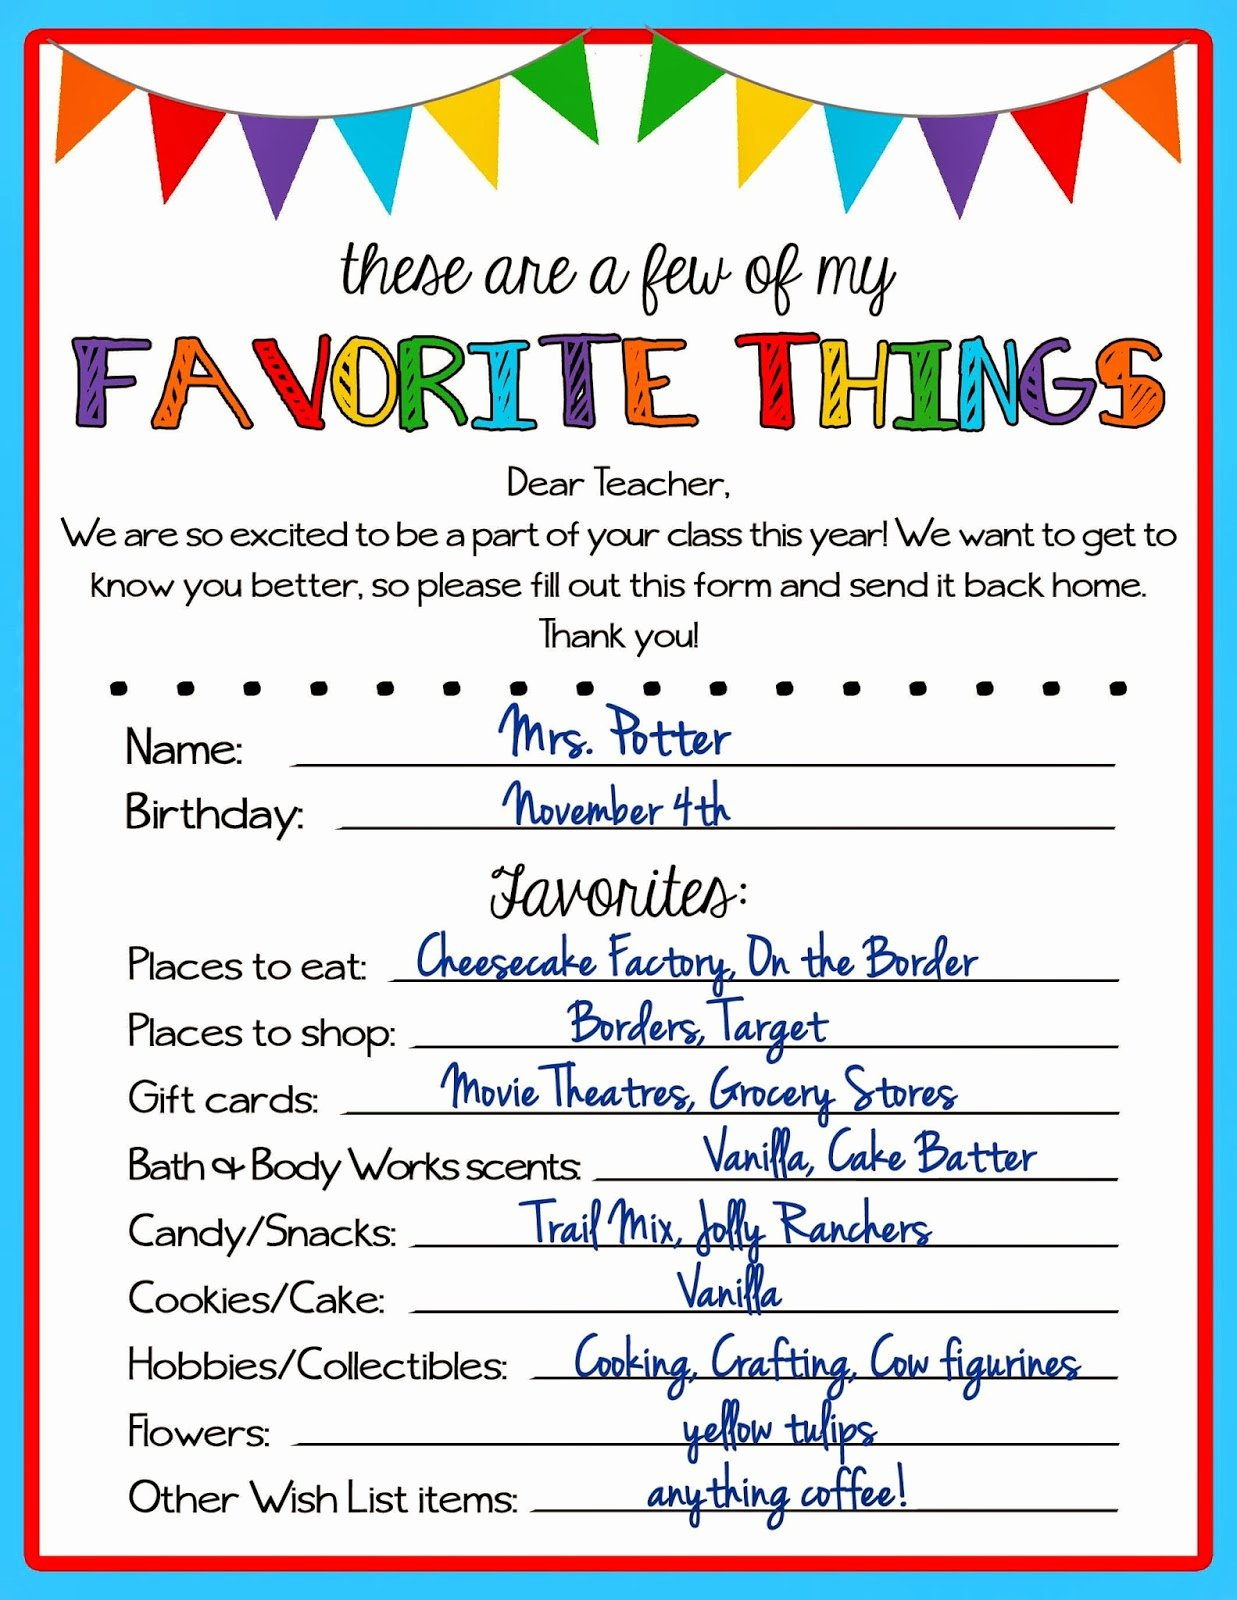 My Favorite Things List Template Luxury Kicking ass & Crafting Teacher Favorite Things Questionnaire